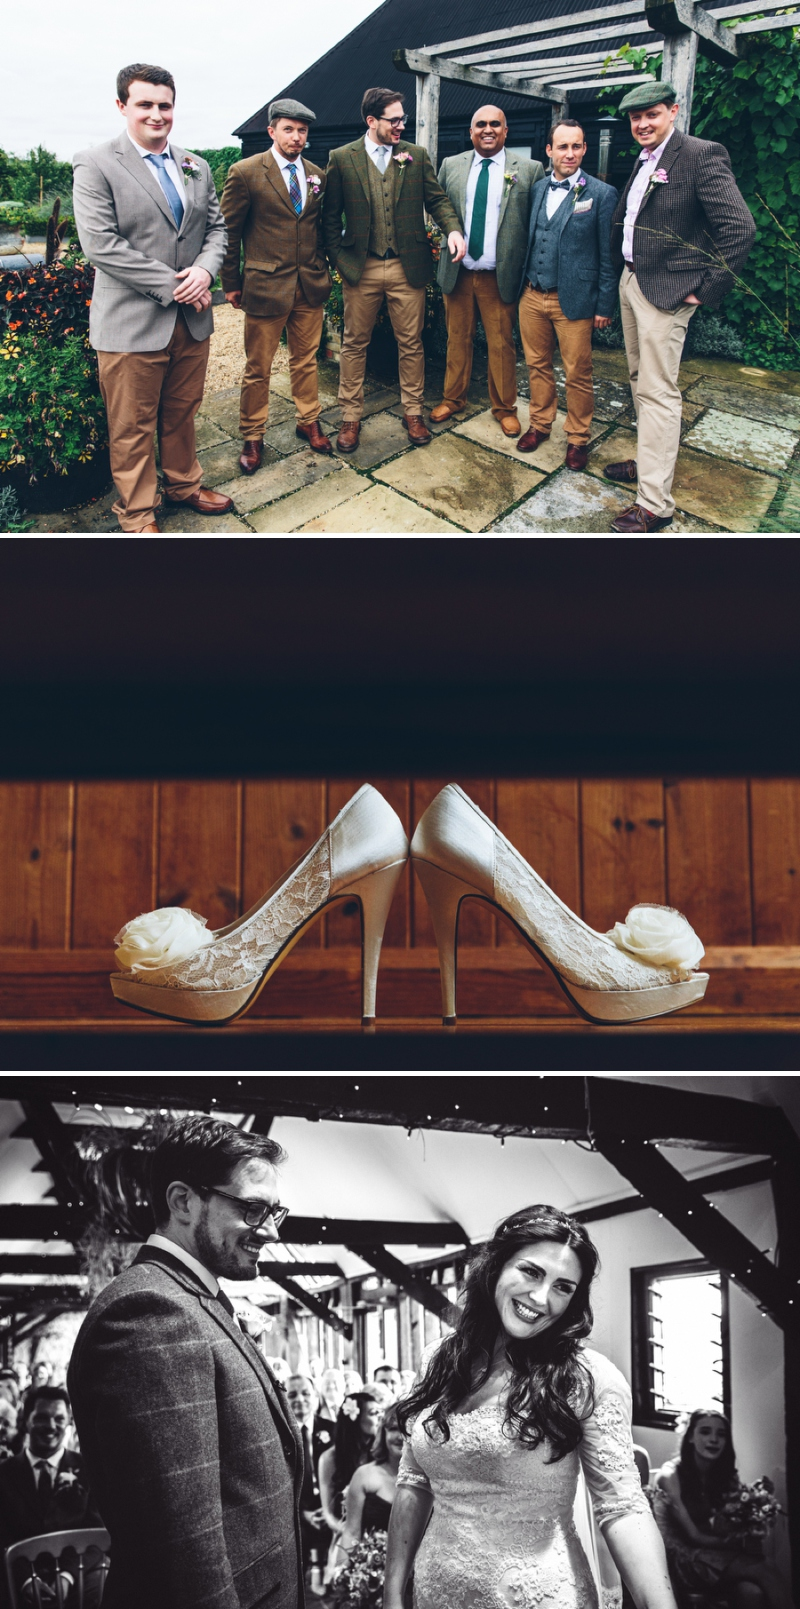 Festival fete style wedding at South farm with Urda gown by Pronovias by Mister Phill Photography_0549